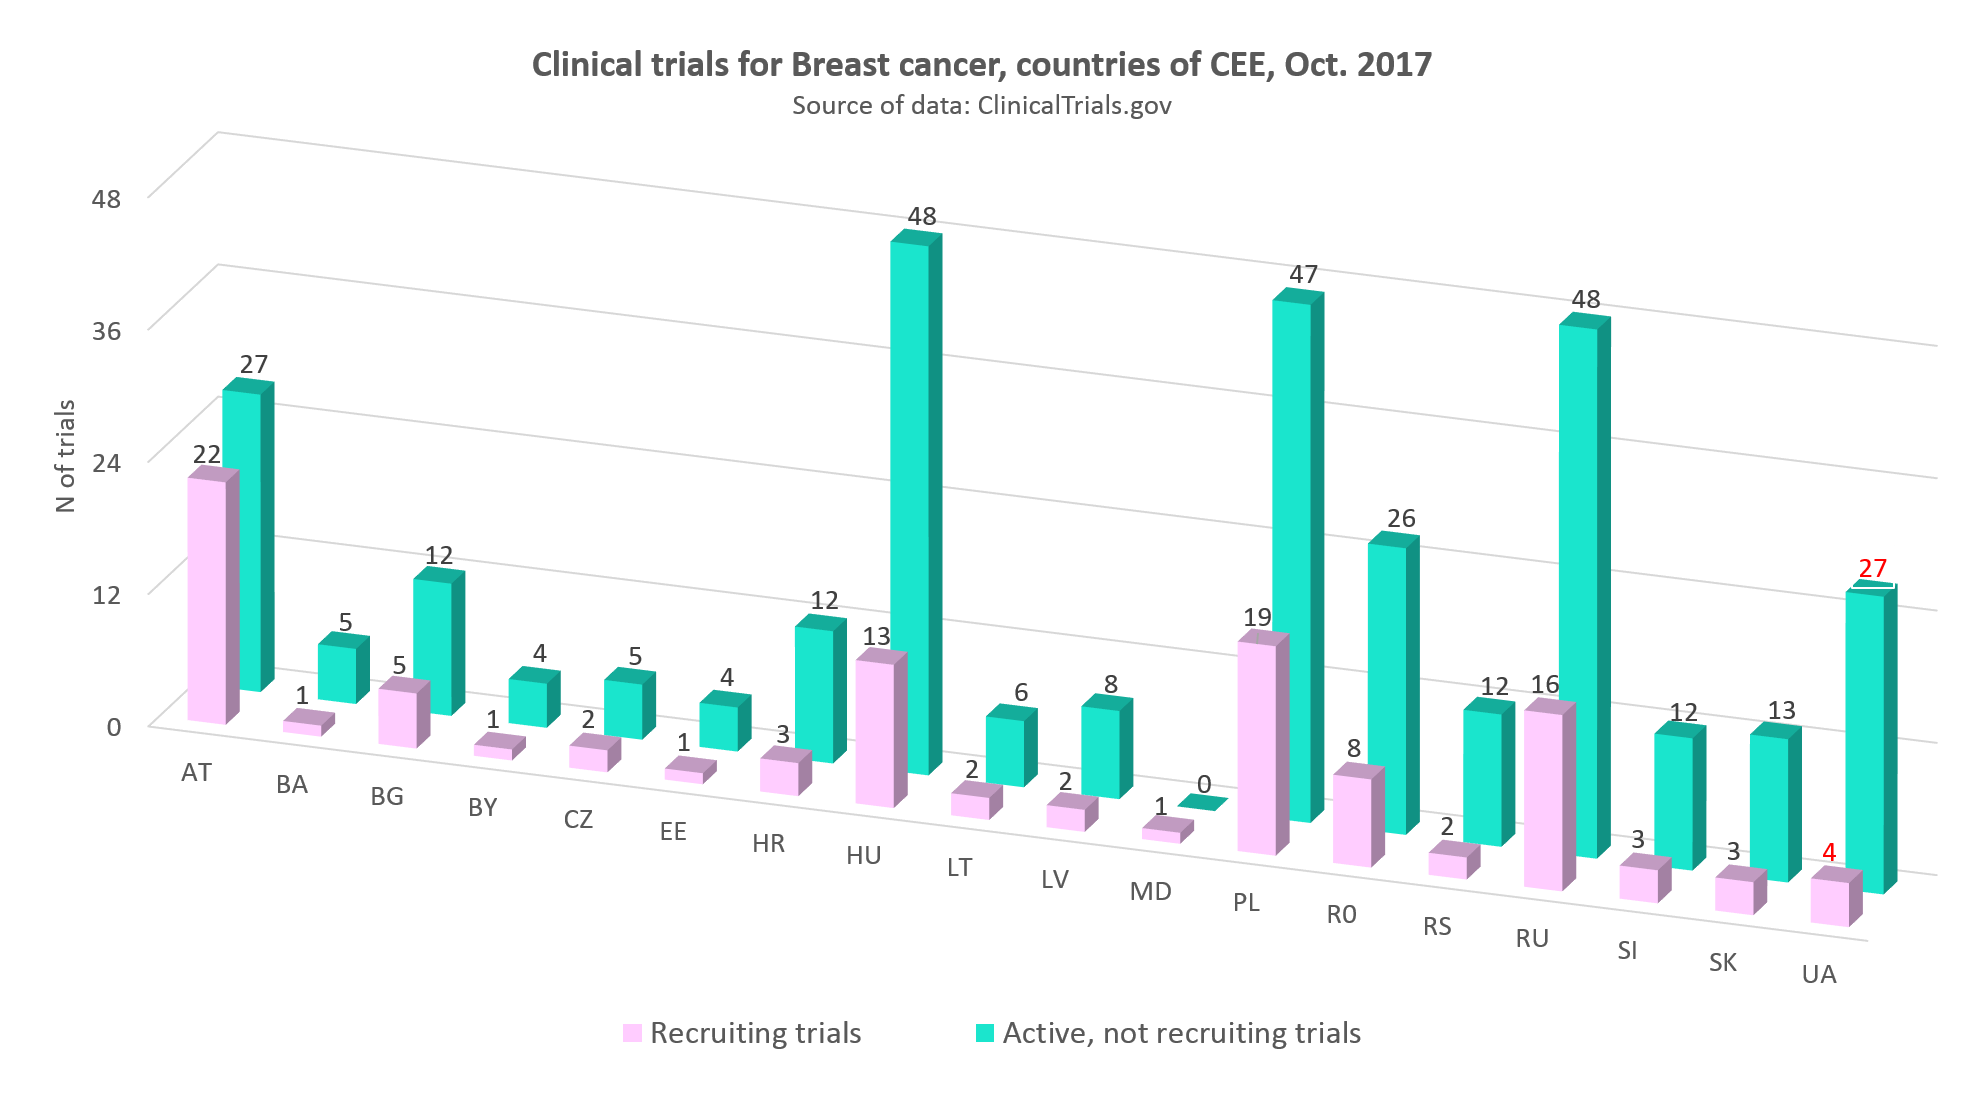 Clinical trials for breast cancer in the countries of CEE, Оctober 2017